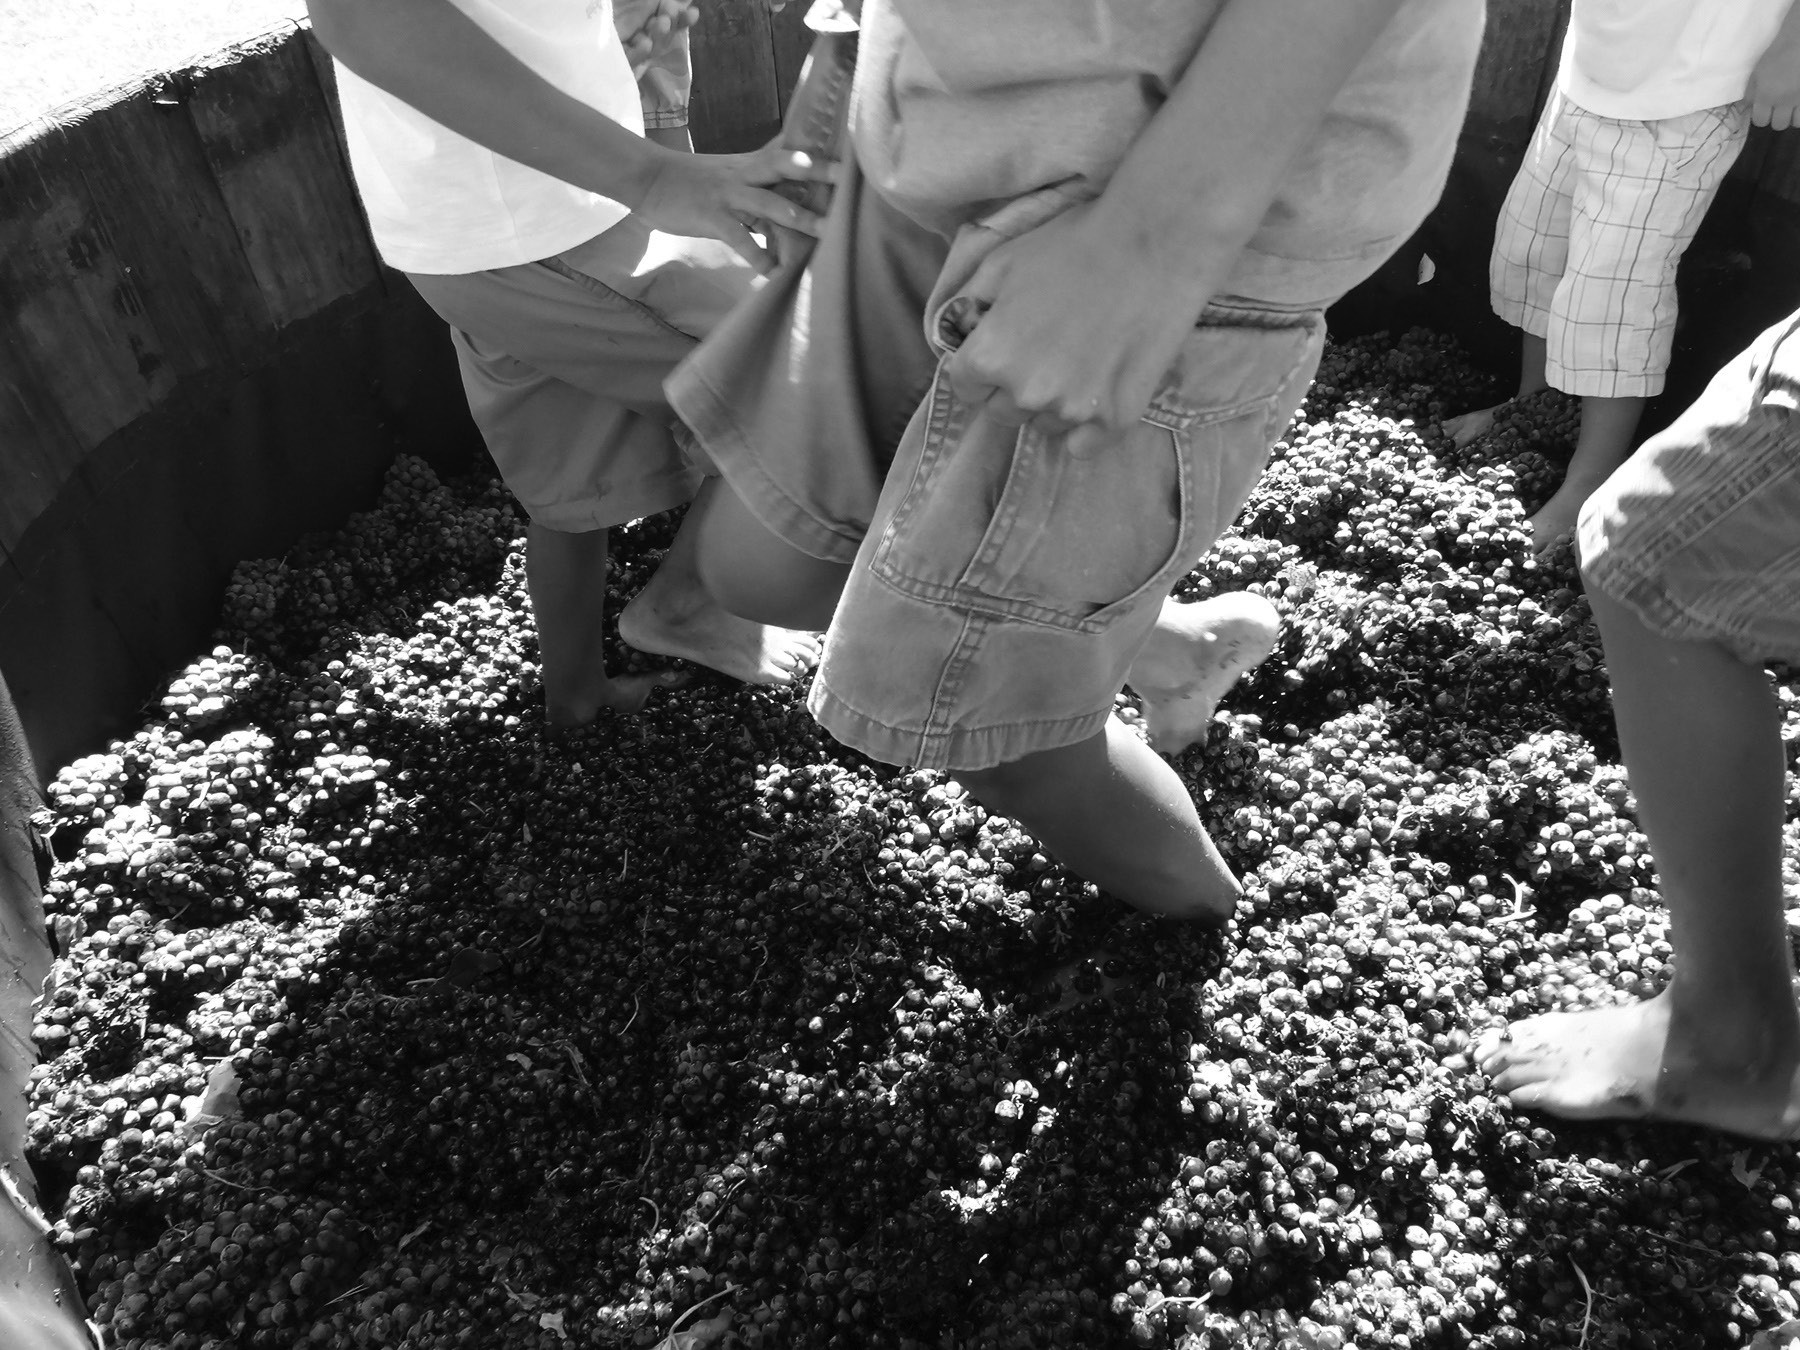 Grape stomping will be one of the fun activities at the October 1st Grape Day Discovery Festival at Grape Day Park.